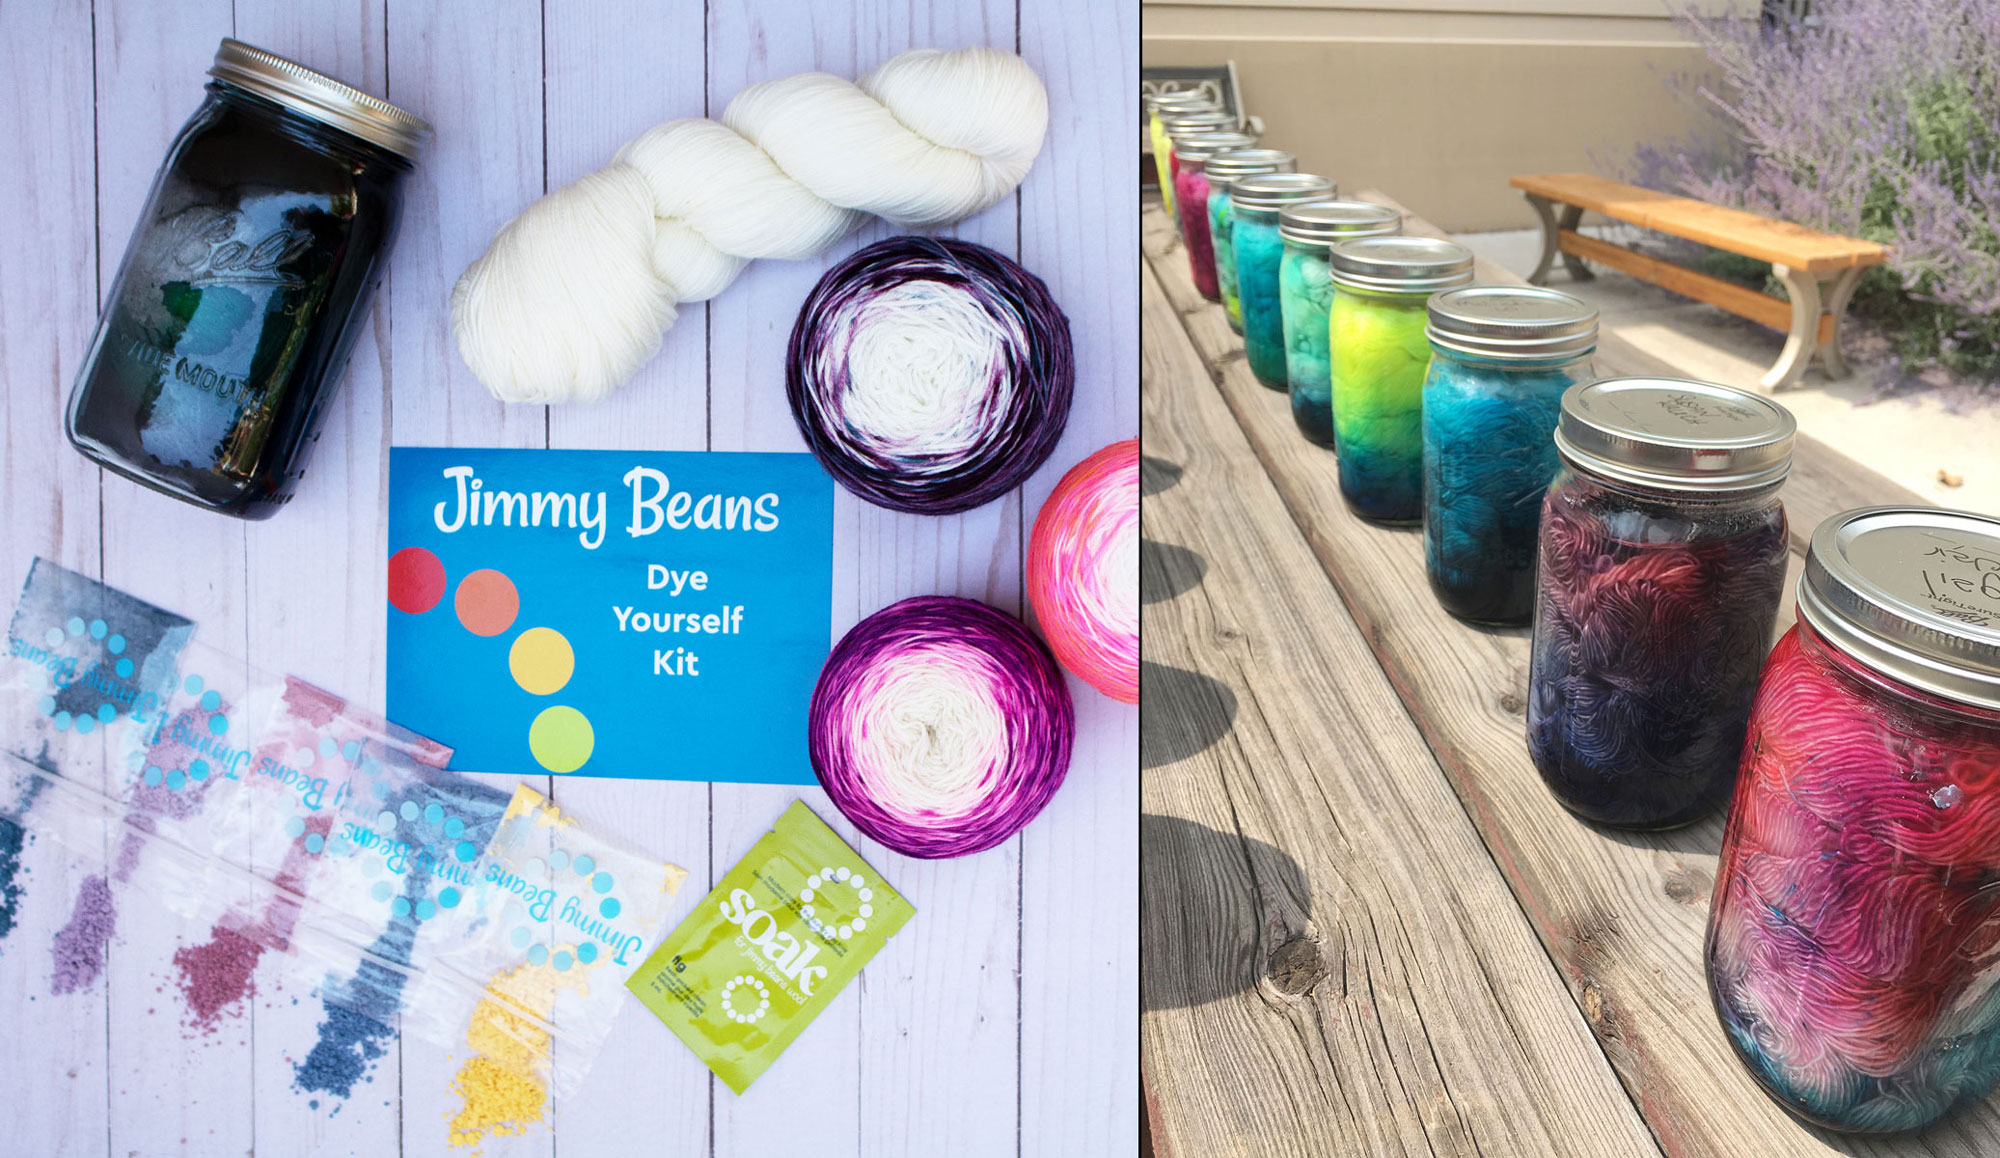 Jimmy Beans Wool Craft Class Kit - Dye Yourself